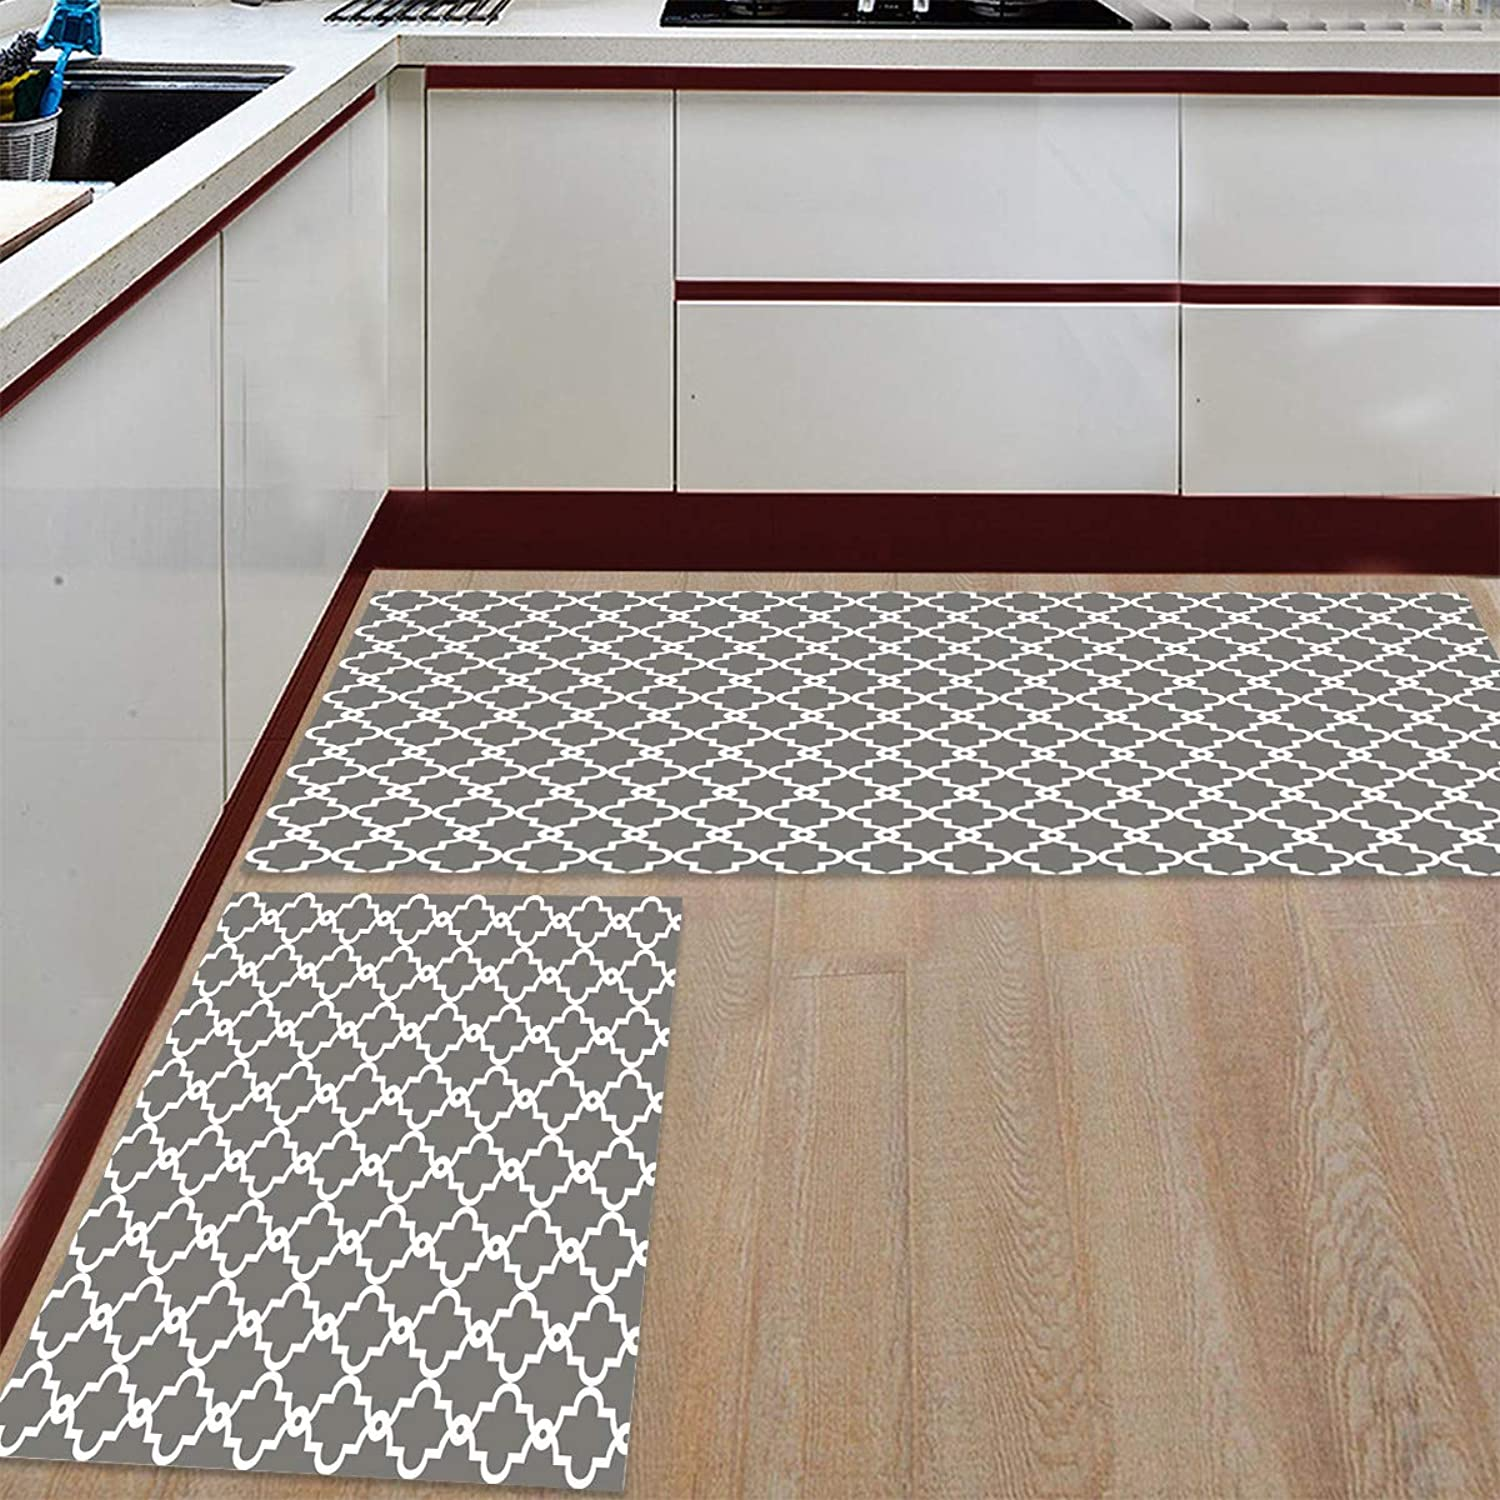 Livencher Kitchen Mats 2 Piece Rubber Backing Non-Slip Kitchen Bathroom Mat Doormat Area Rugs - Geometric Patterned - Grey 19.7x31.5in+19.7x63in